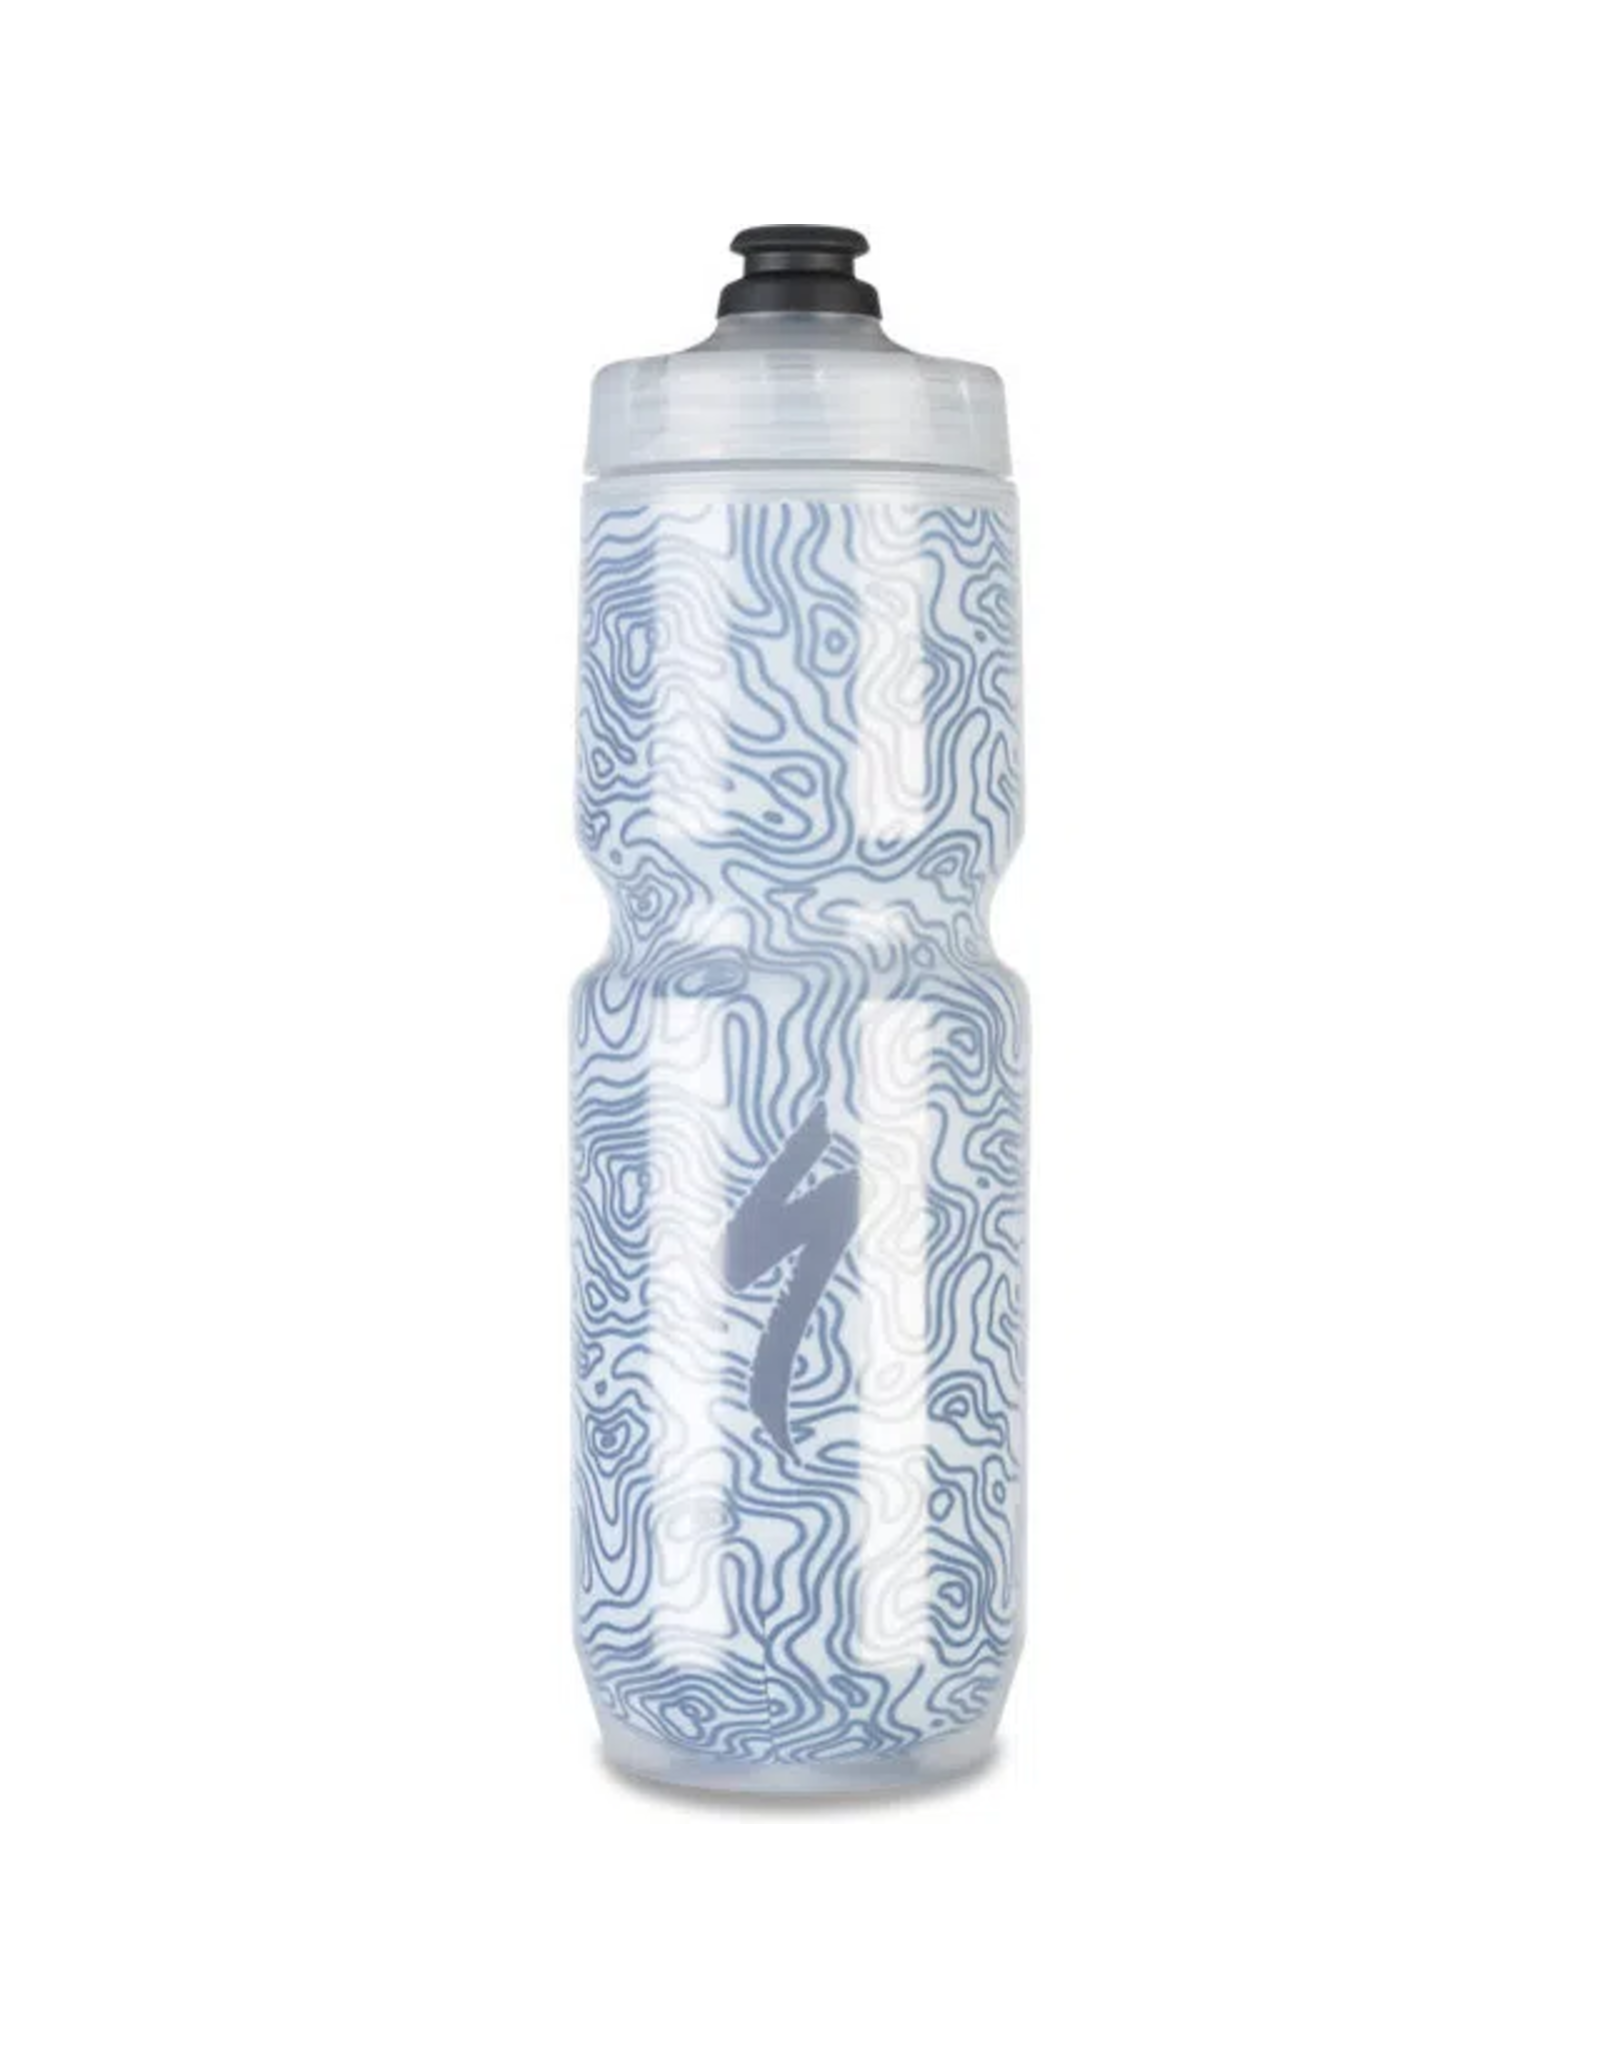 Specialized Specialized Moflo Purist Insulated 23oz. Water Bottle - Topo Print